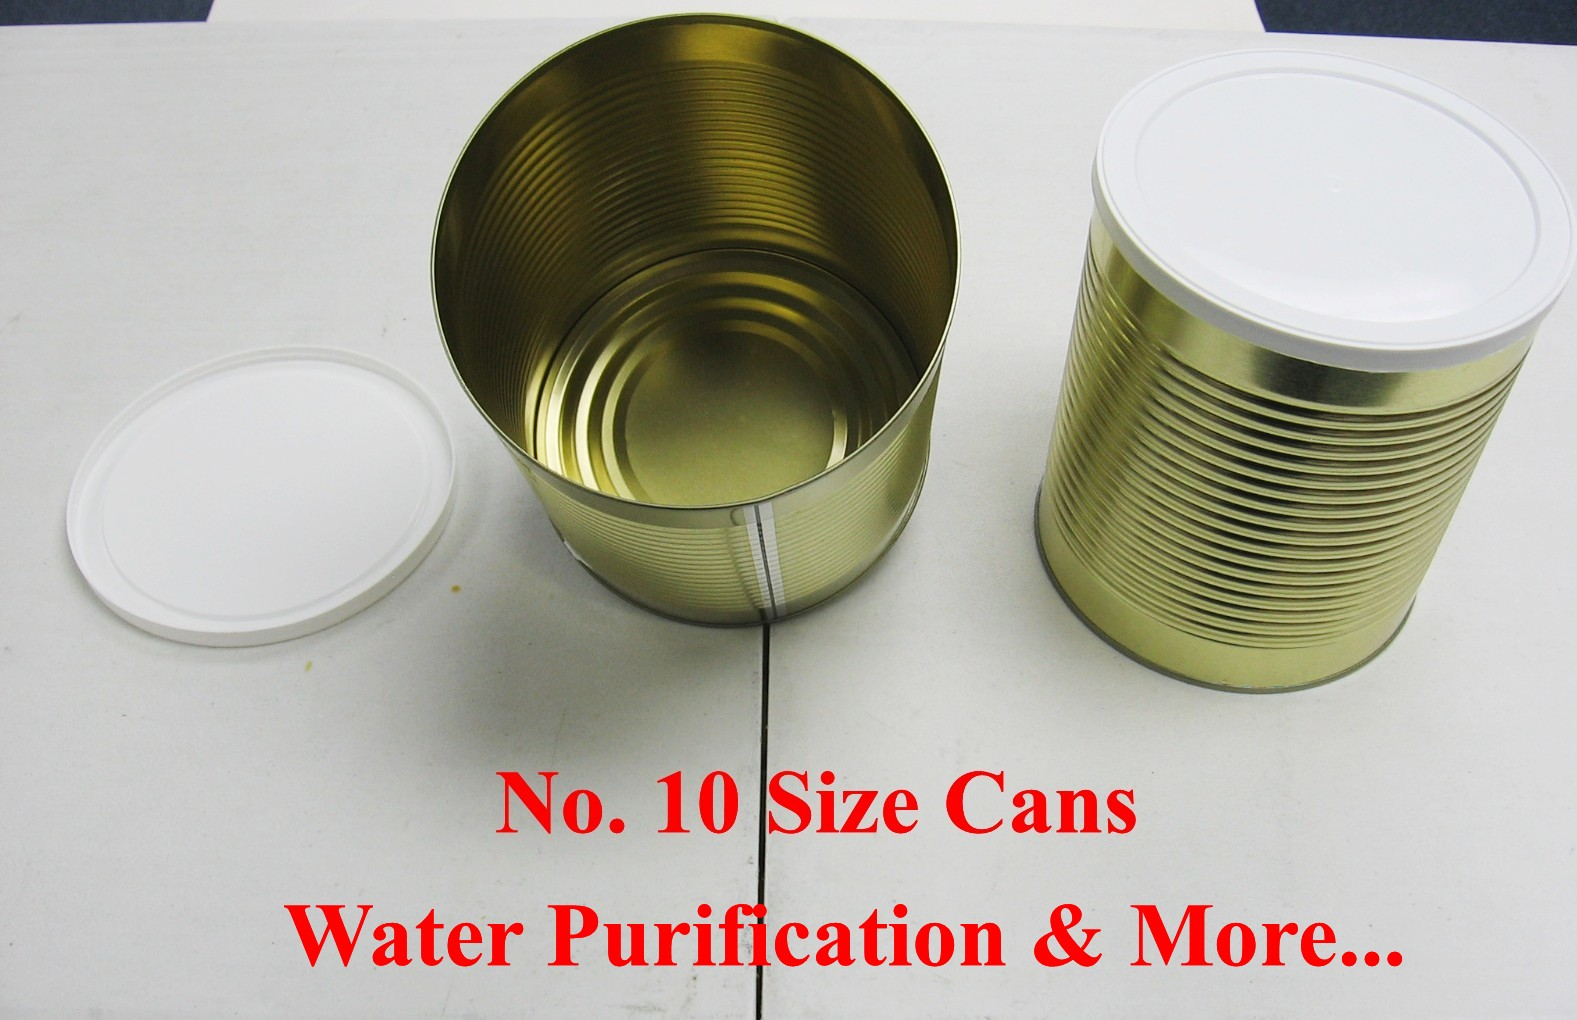 No. 10 Cans With Lid